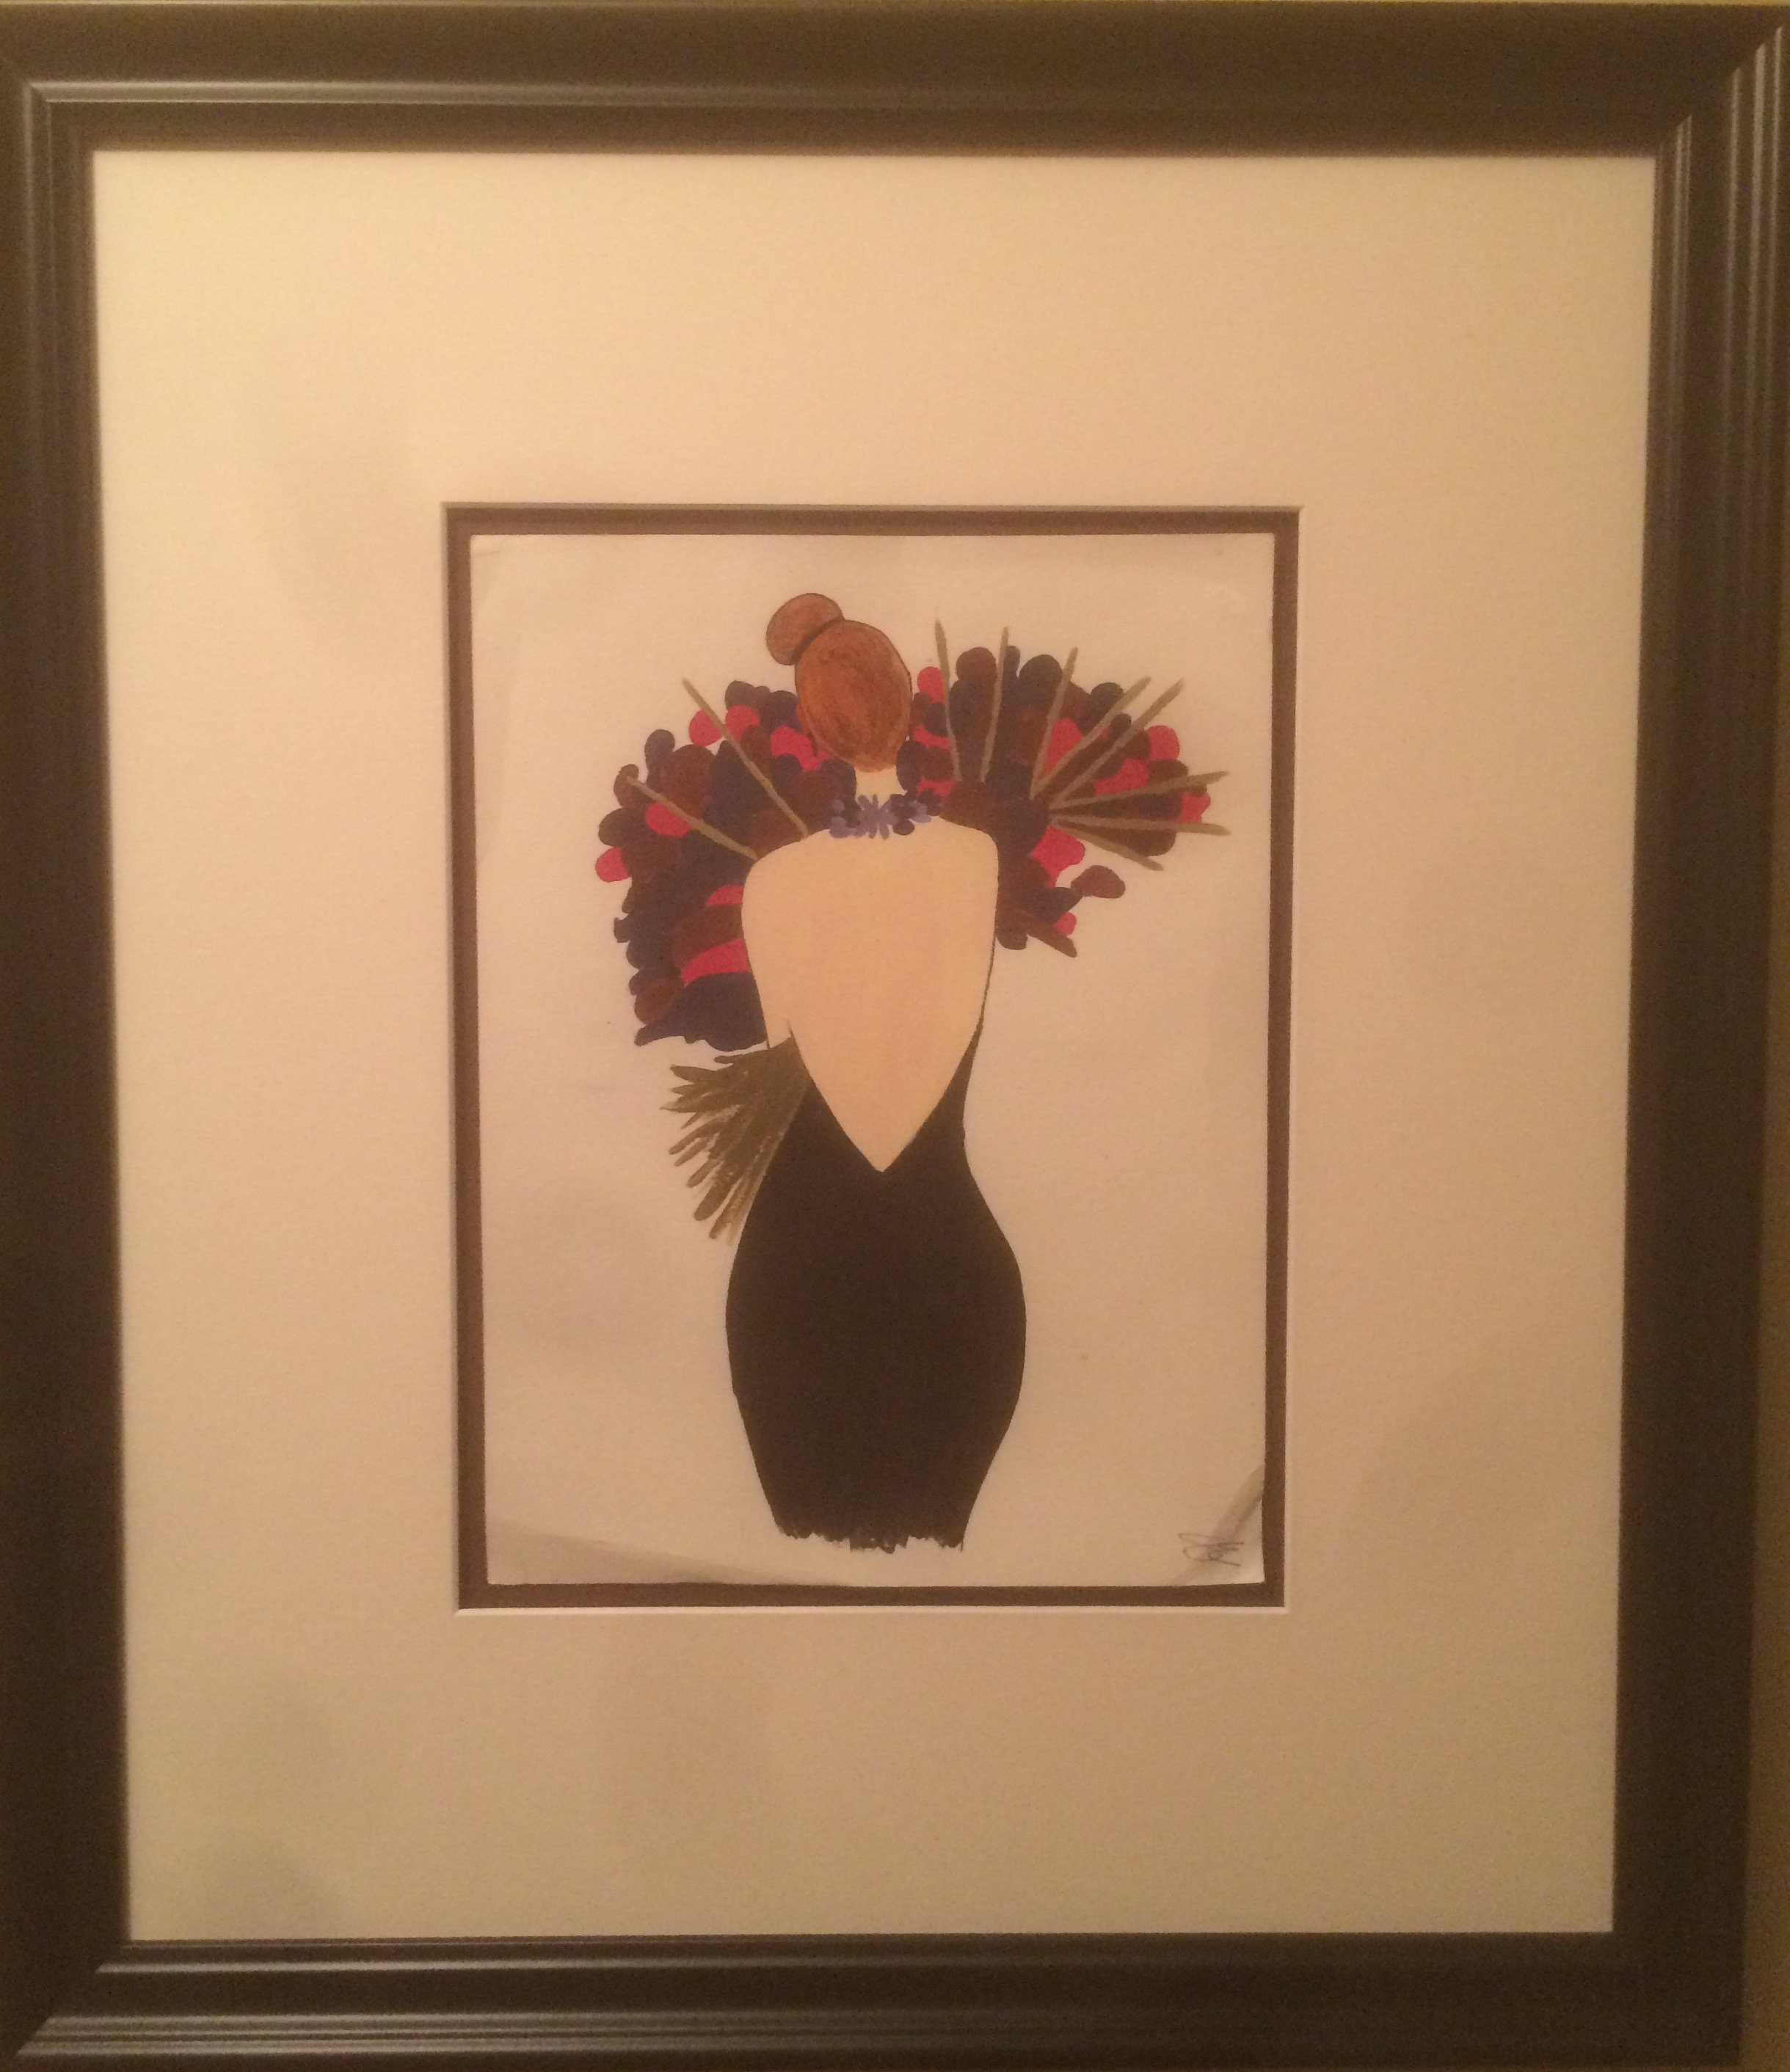 A poor photograph of a stunning Sarah Edwards original that is hanging on my wall.